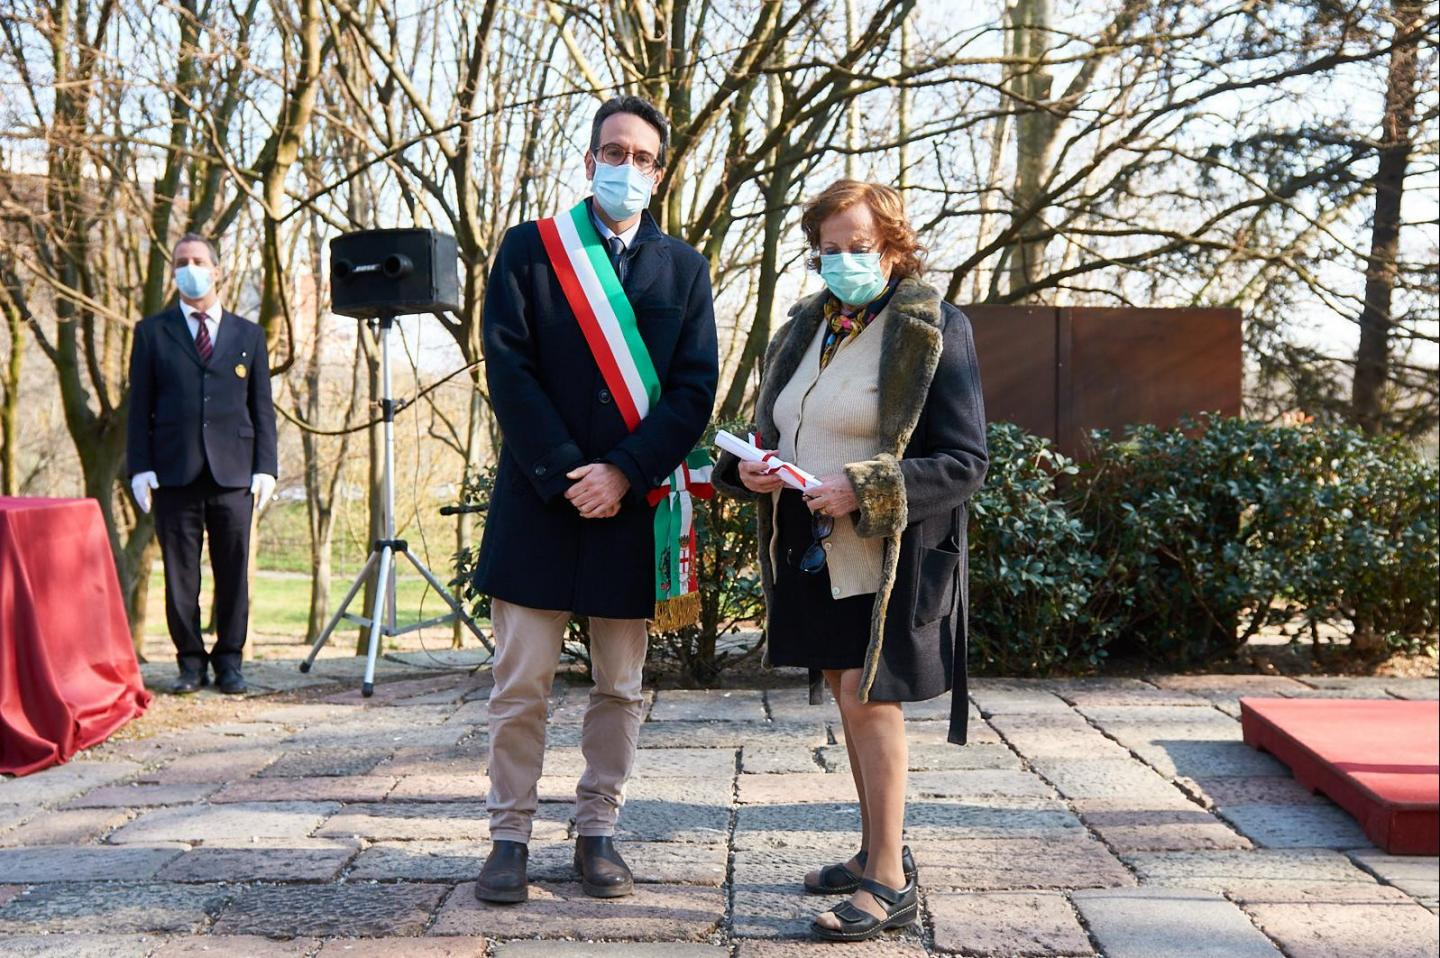 Lamberto Bertolé and Giovanna Gangi, wife of the Righteous Ivan Sopianac honoured together with the Sopianac family